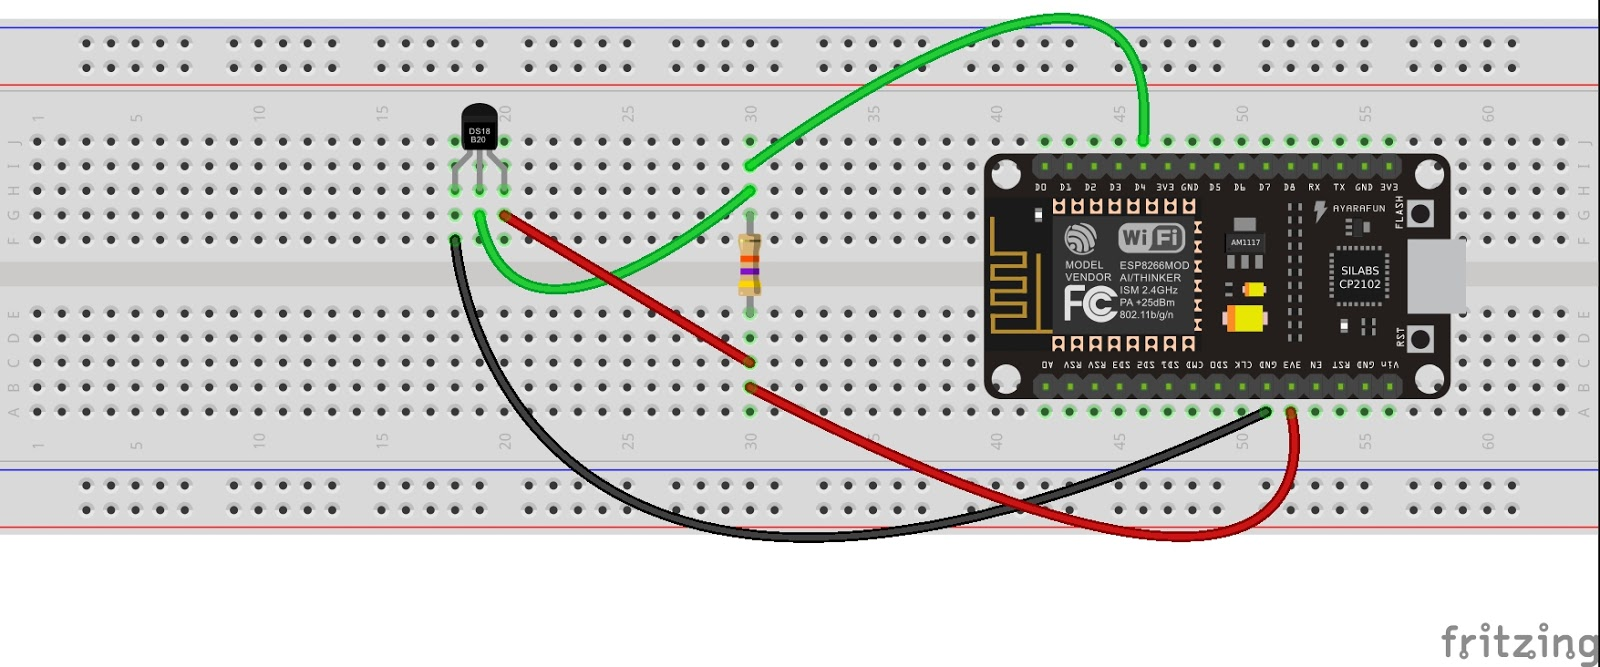 hight resolution of step 3 upload ds18b20 temperature sensor data to thingspeak from esp8266 nodemcu